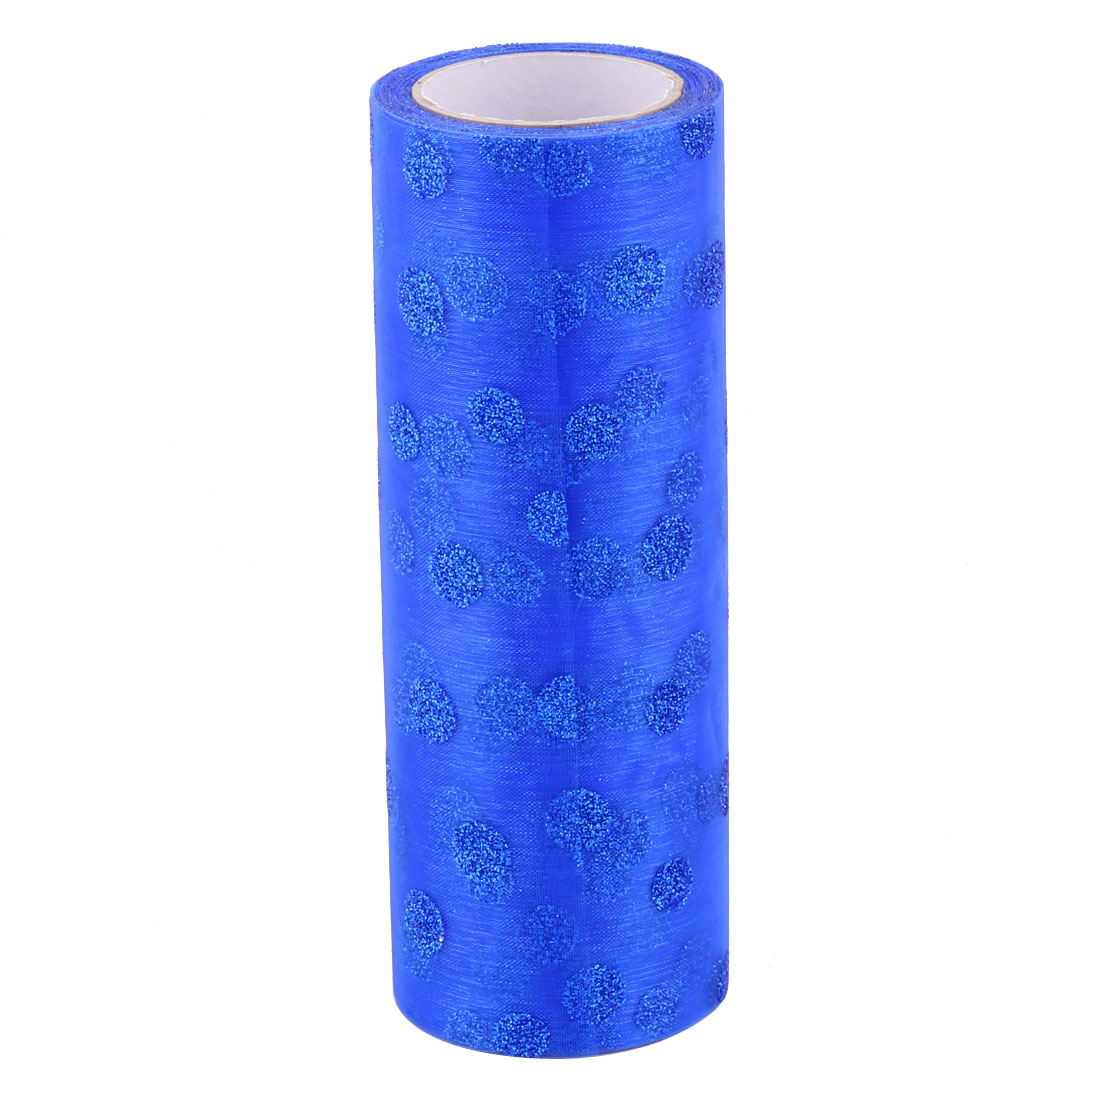 Home Wedding Nylon DIY Decoration Tulle Spool Roll Dark Blue 6 Inch x 10 Yards